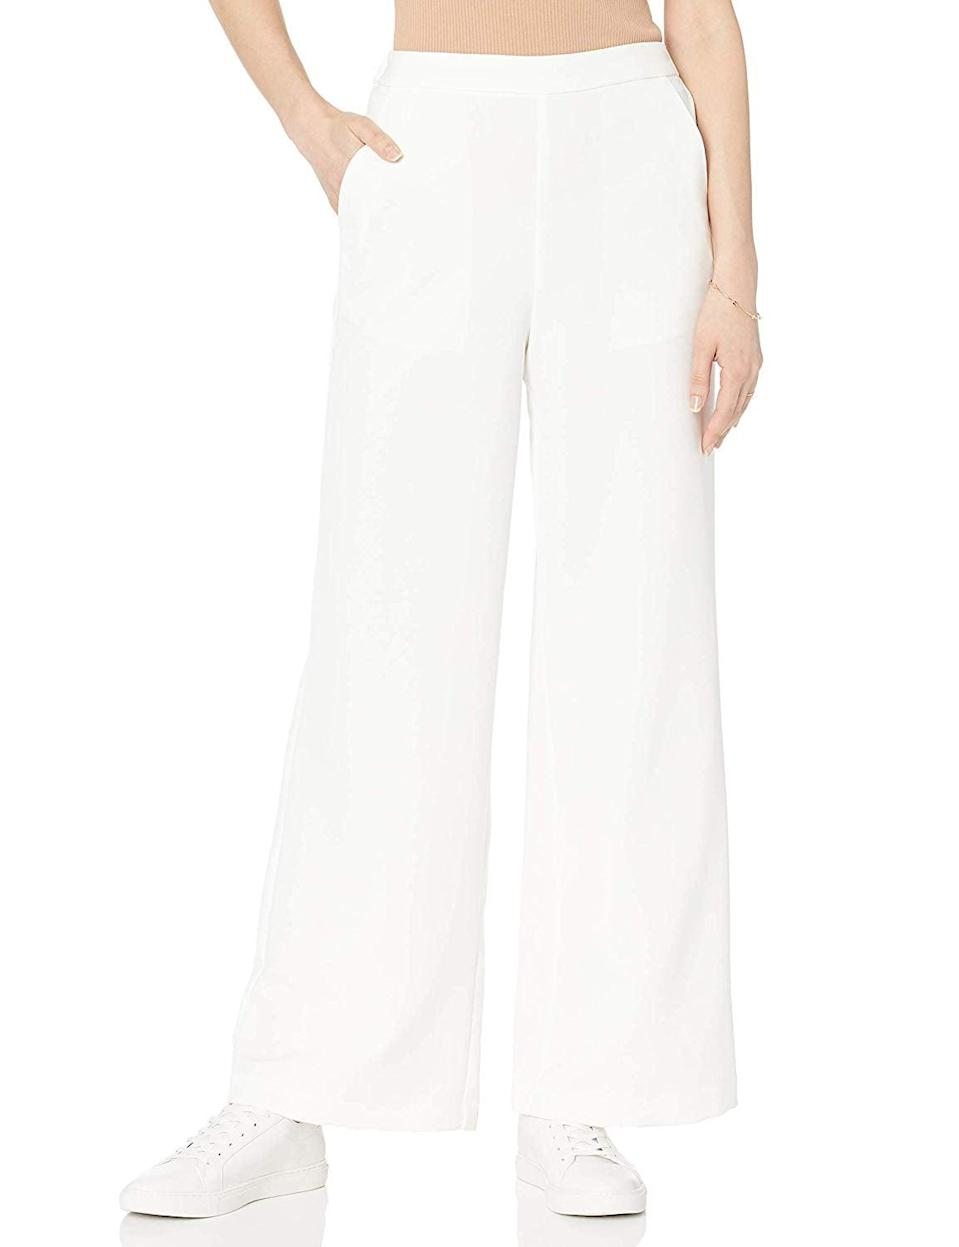 """<p>This <a href=""""https://www.popsugar.com/buy/Drop-Women-Rosa-Wide-Leg-Pull--Soft-Trouser-480603?p_name=The%20Drop%20Women%27s%20Rosa%20Wide-Leg%20Pull-On%20Soft%20Trouser&retailer=amazon.com&pid=480603&price=50&evar1=fab%3Aus&evar9=46804763&evar98=https%3A%2F%2Fwww.popsugar.com%2Ffashion%2Fphoto-gallery%2F46804763%2Fimage%2F46804835%2FBasic-Trouser&list1=shopping%2Cfall%20fashion%2Camazon%2Cfall&prop13=mobile&pdata=1"""" class=""""link rapid-noclick-resp"""" rel=""""nofollow noopener"""" target=""""_blank"""" data-ylk=""""slk:The Drop Women's Rosa Wide-Leg Pull-On Soft Trouser"""">The Drop Women's Rosa Wide-Leg Pull-On Soft Trouser</a> ($50) would look so good with a black crop top and leather jacket.</p>"""